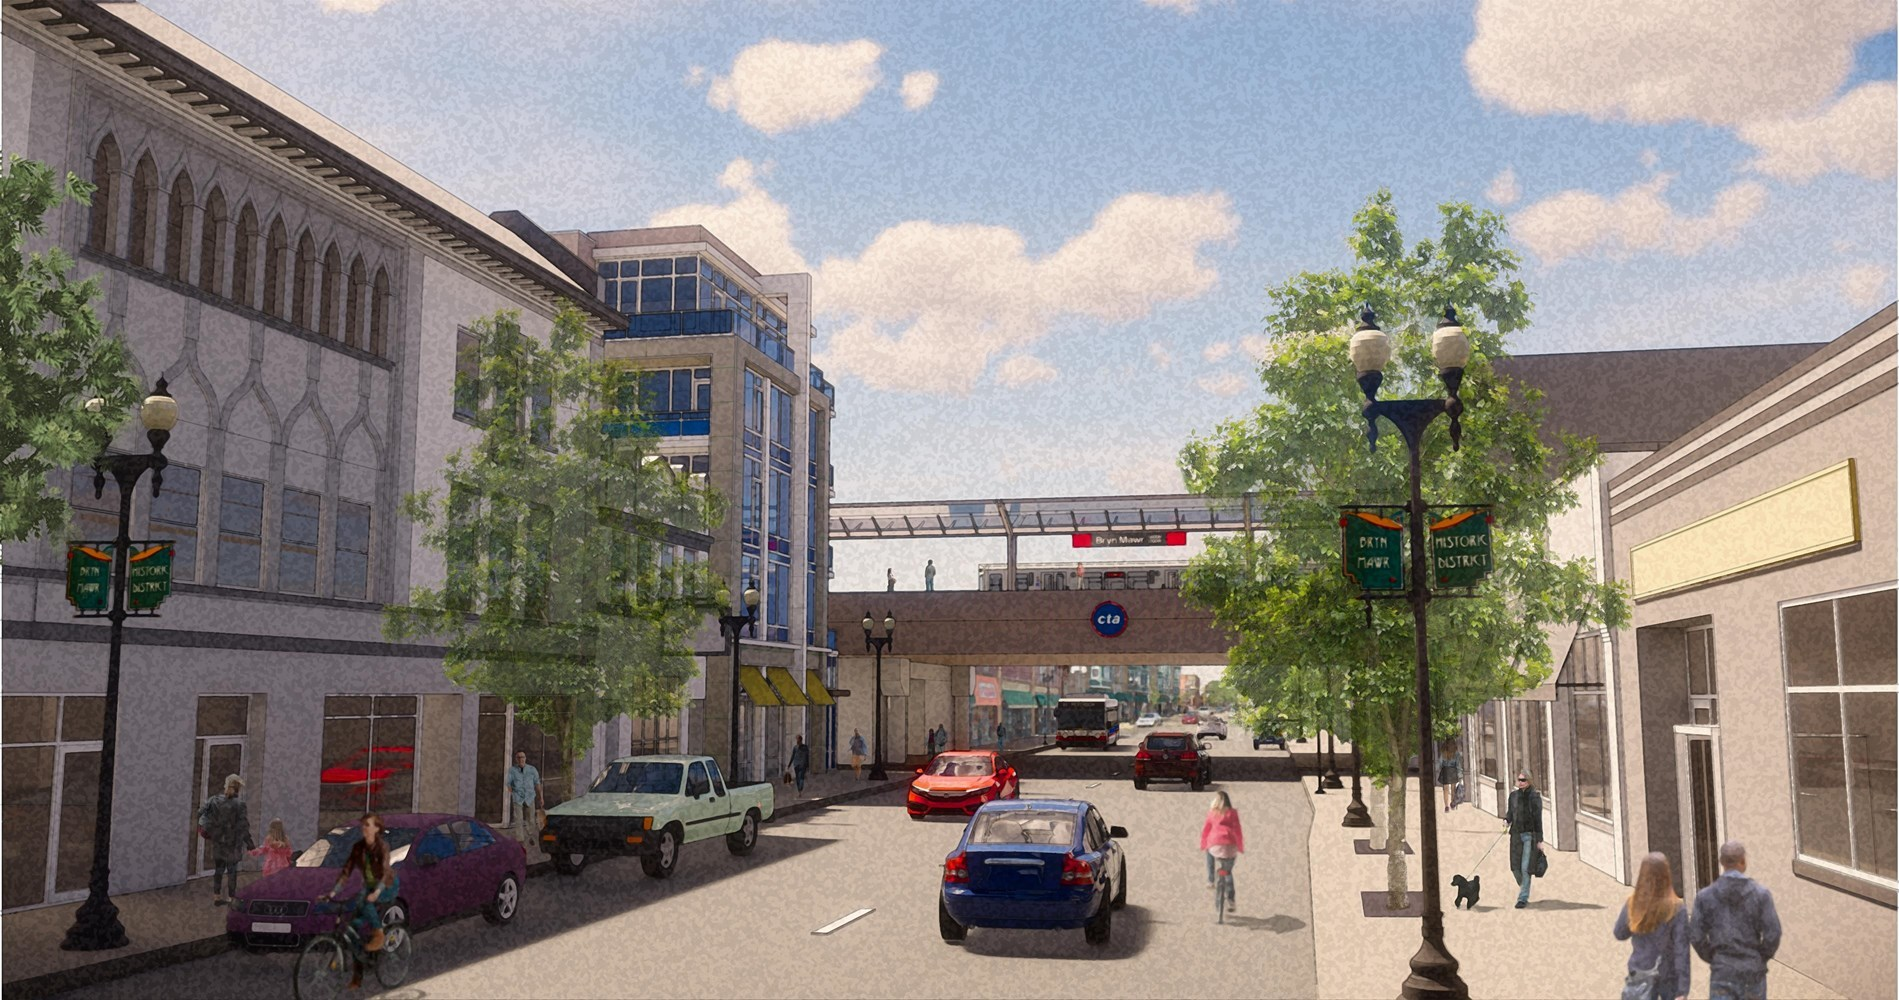 Proposed conceptual rendering of area redevelopment along Bryn Mawr Avenue looking west from Winthrop Avenue.